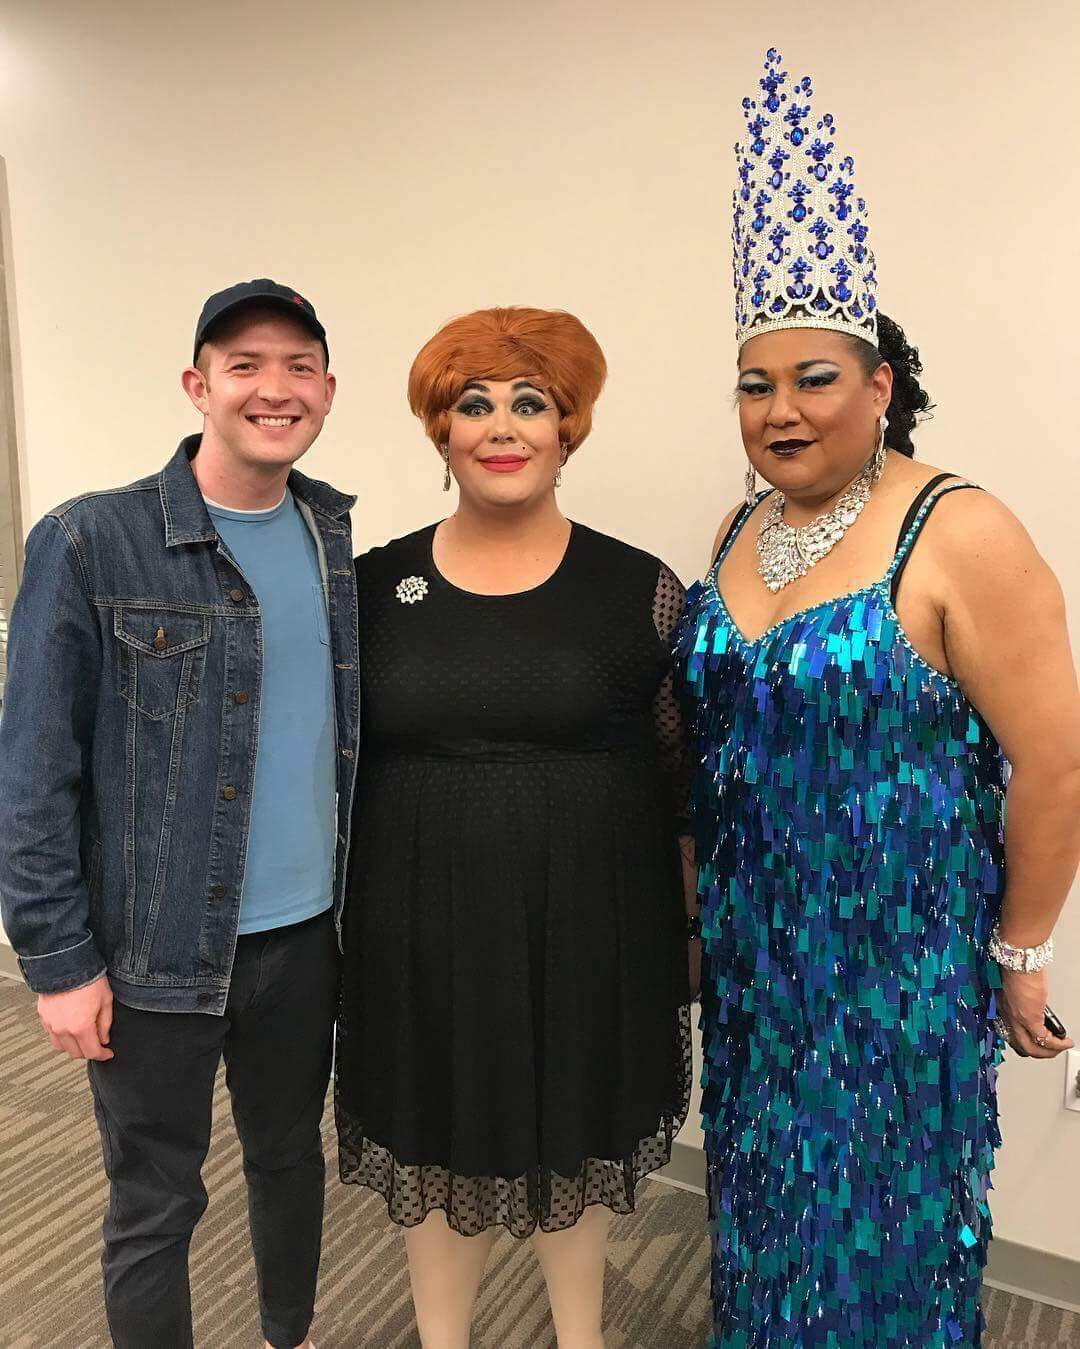 participants and attendees of drag night